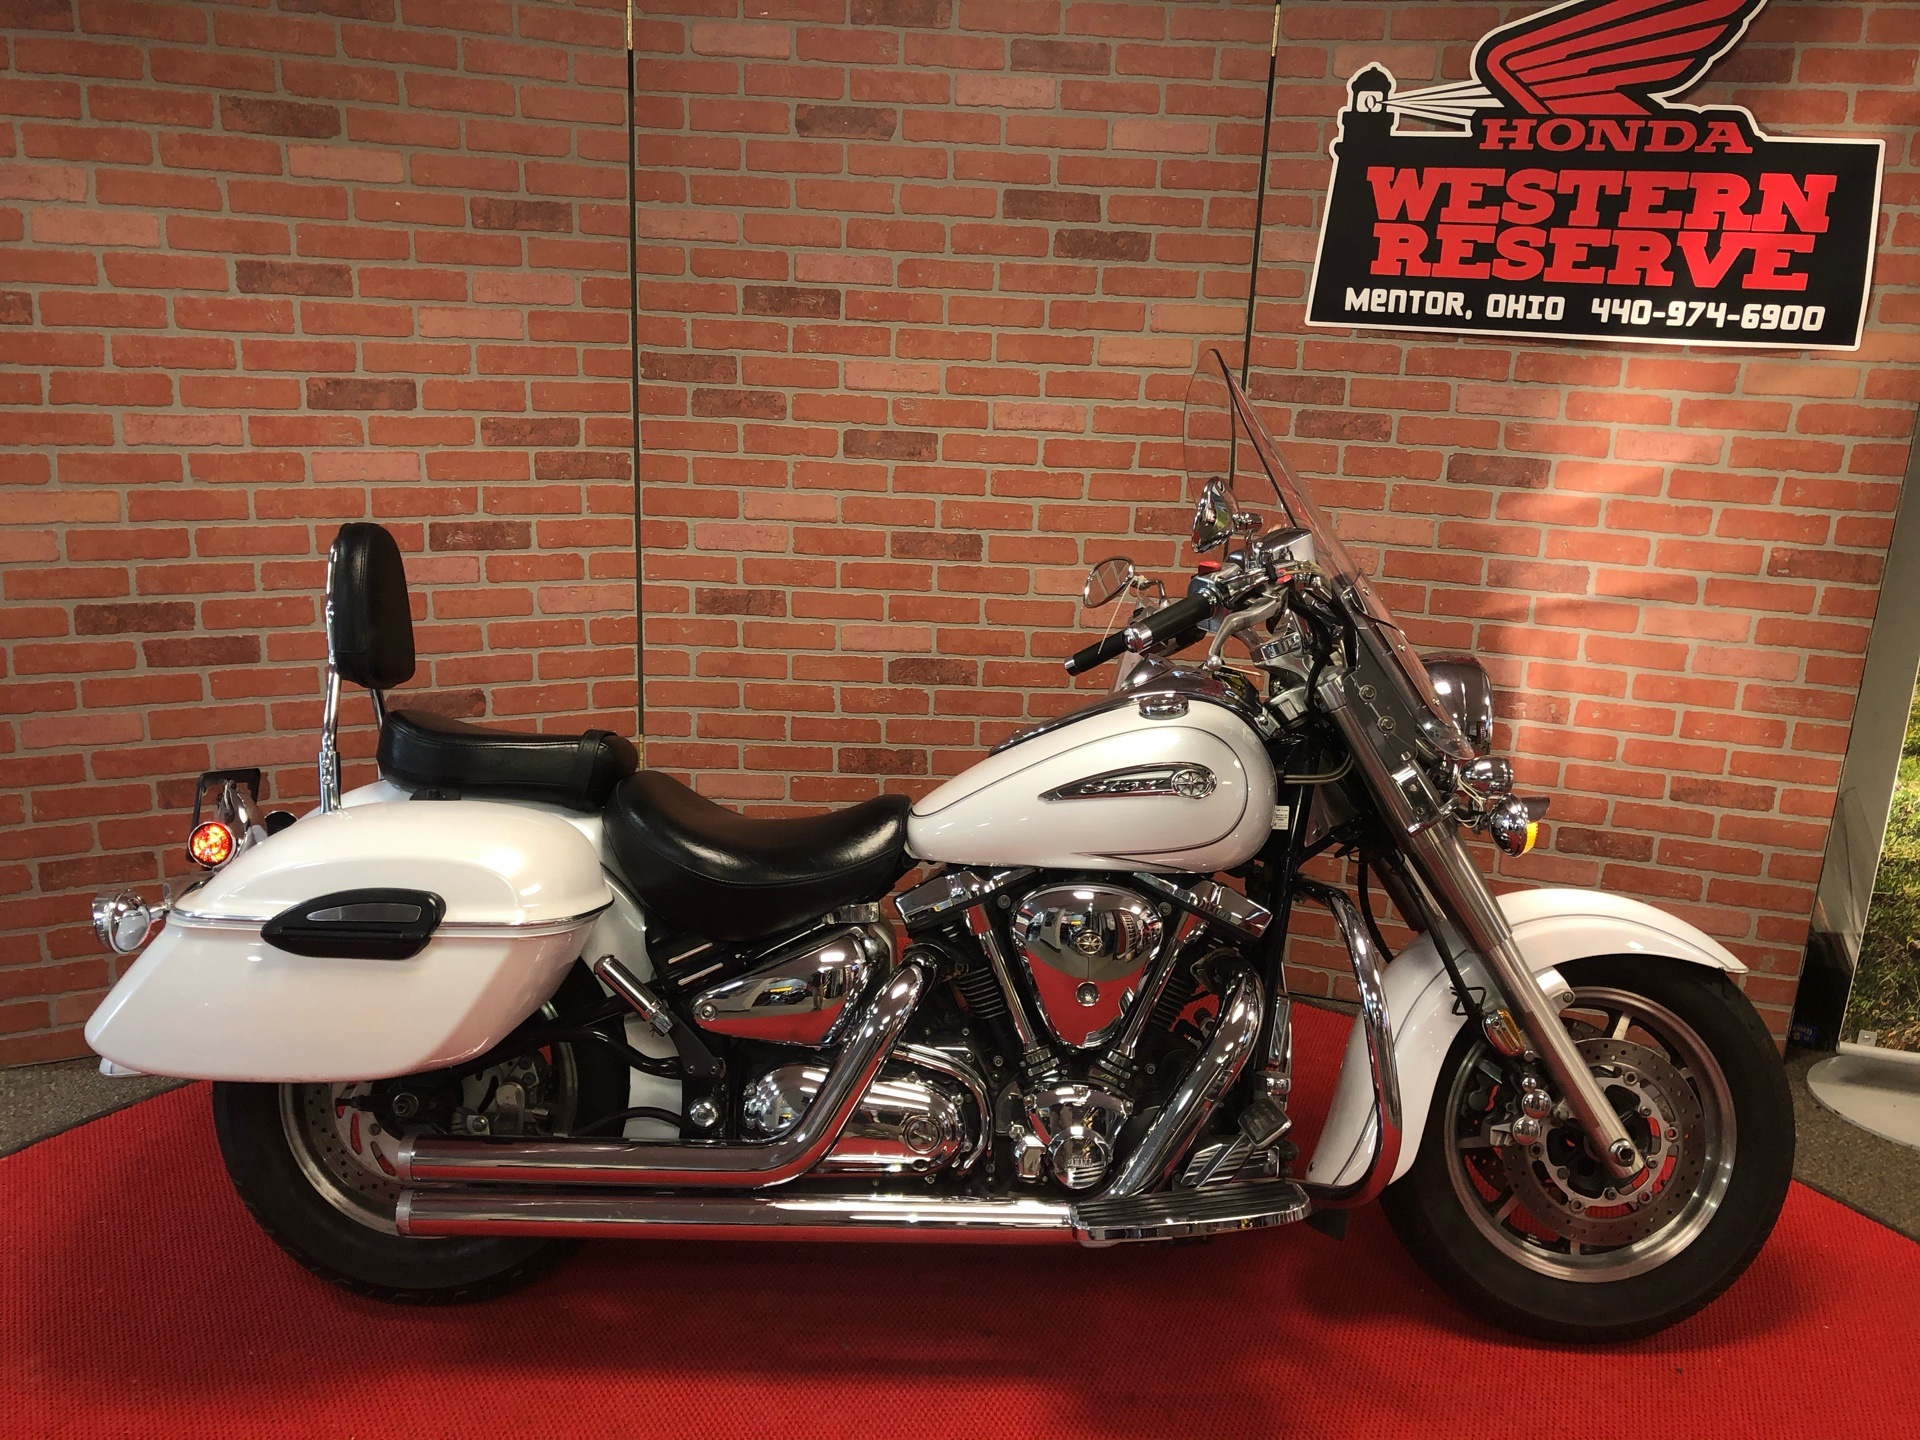 2008 Yamaha Road Star in Mentor, Ohio - Photo 1